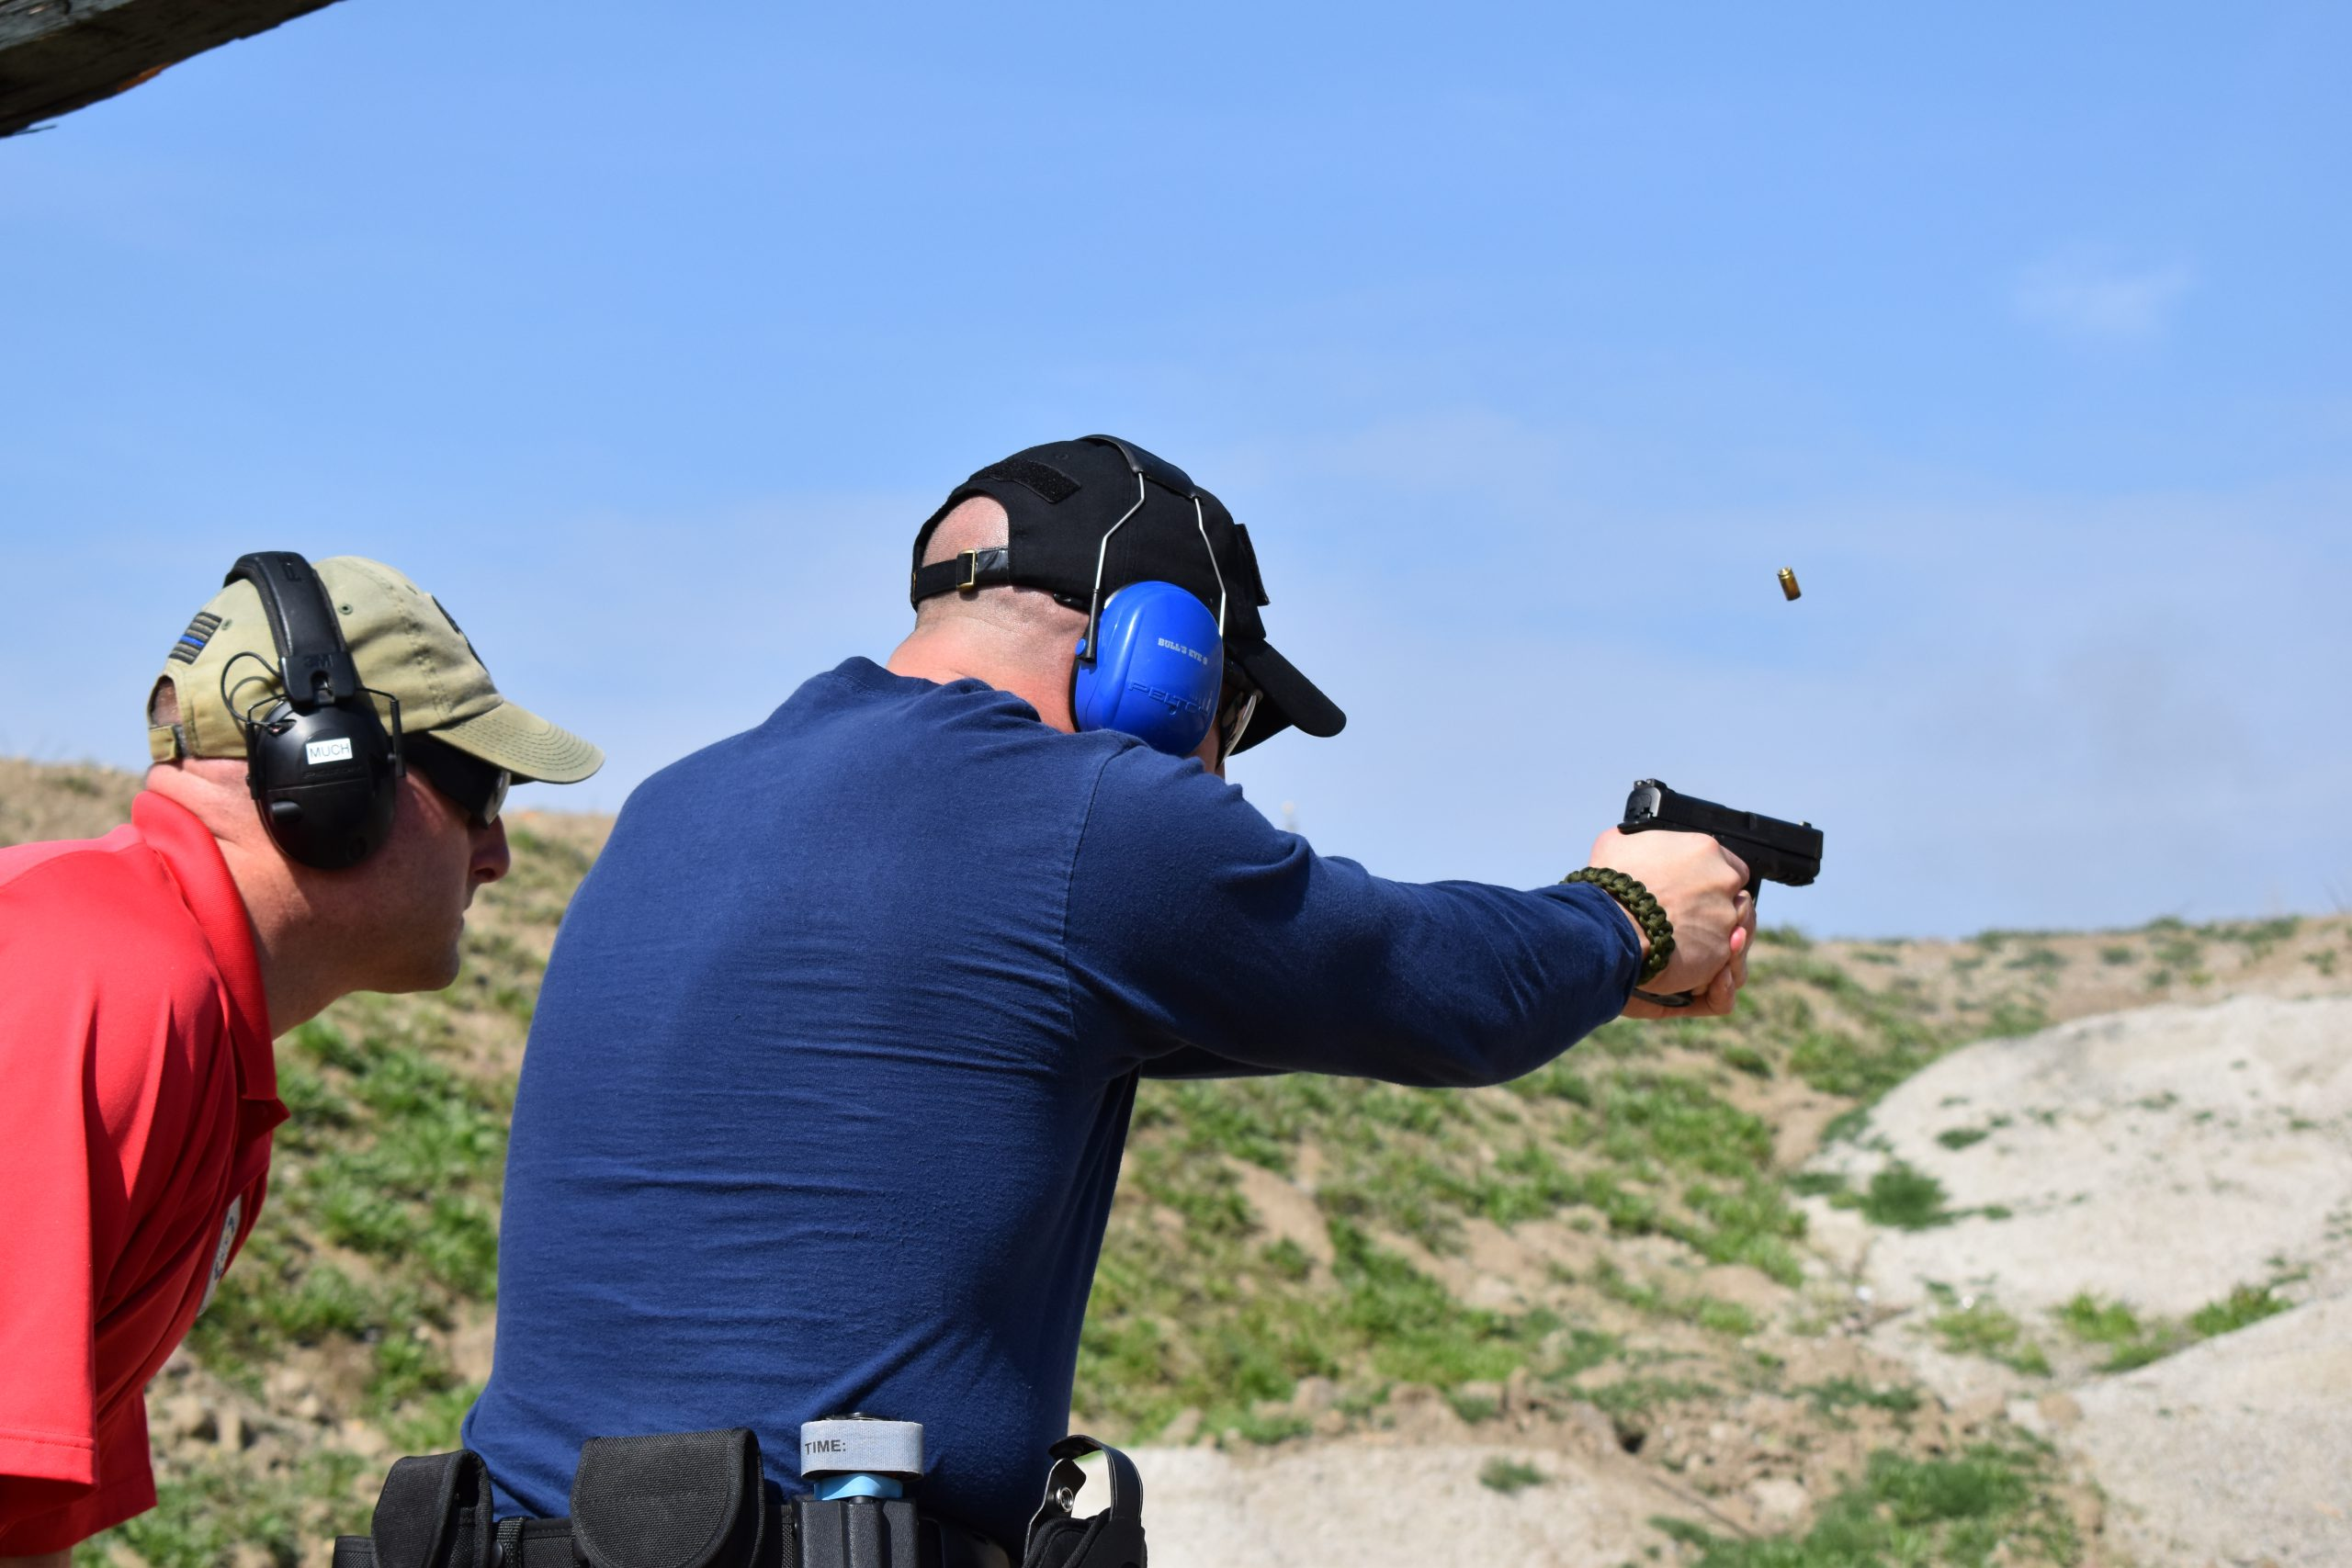 Security officers training at outside gun range